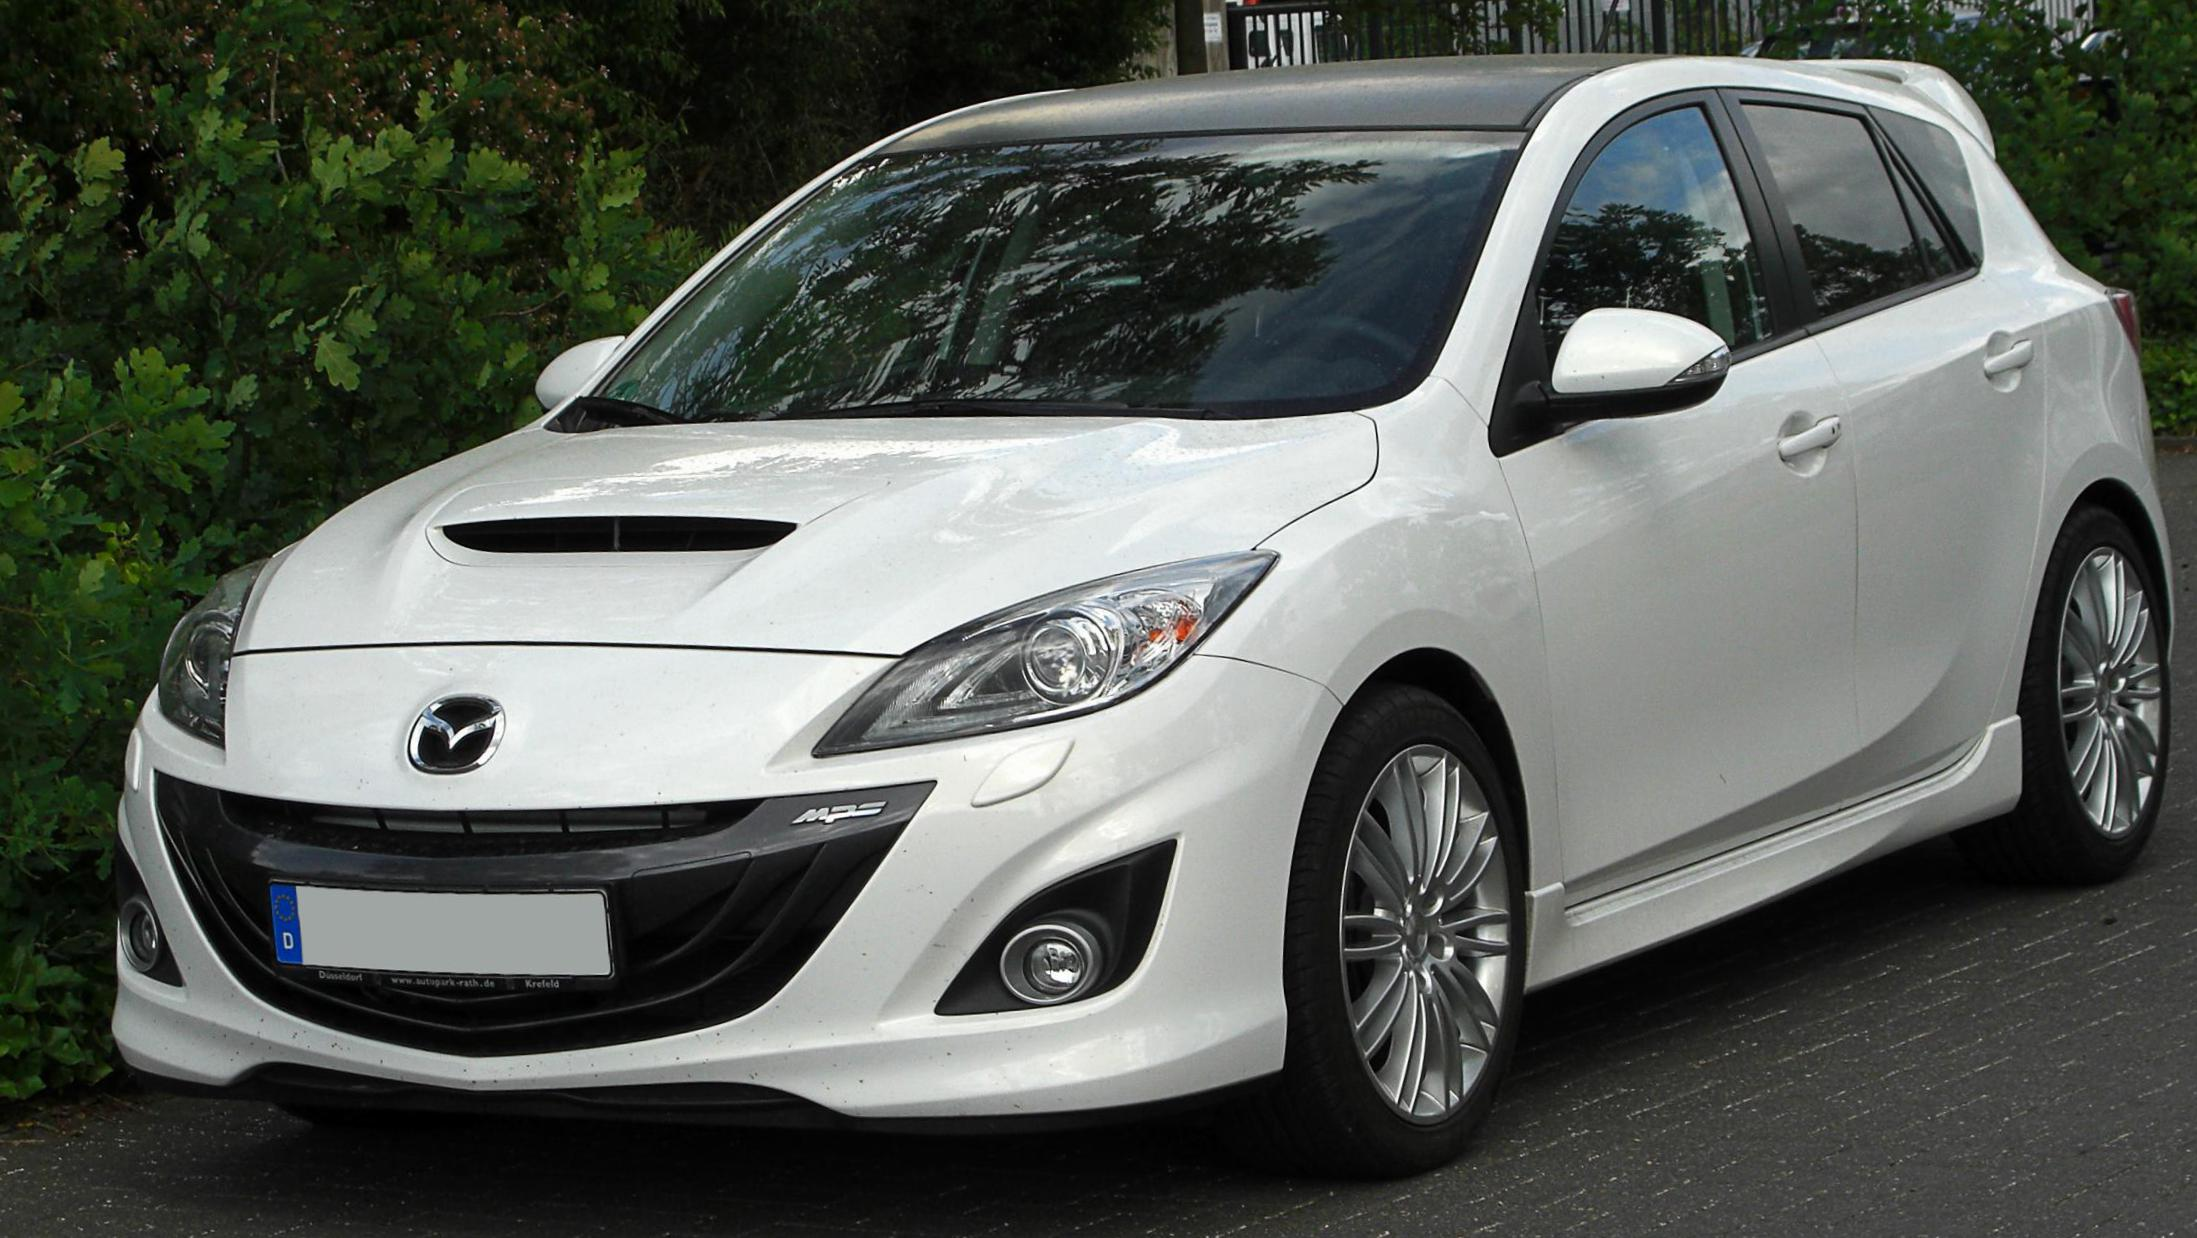 mazda 3 mps photos and specs photo 3 mps mazda tuning. Black Bedroom Furniture Sets. Home Design Ideas